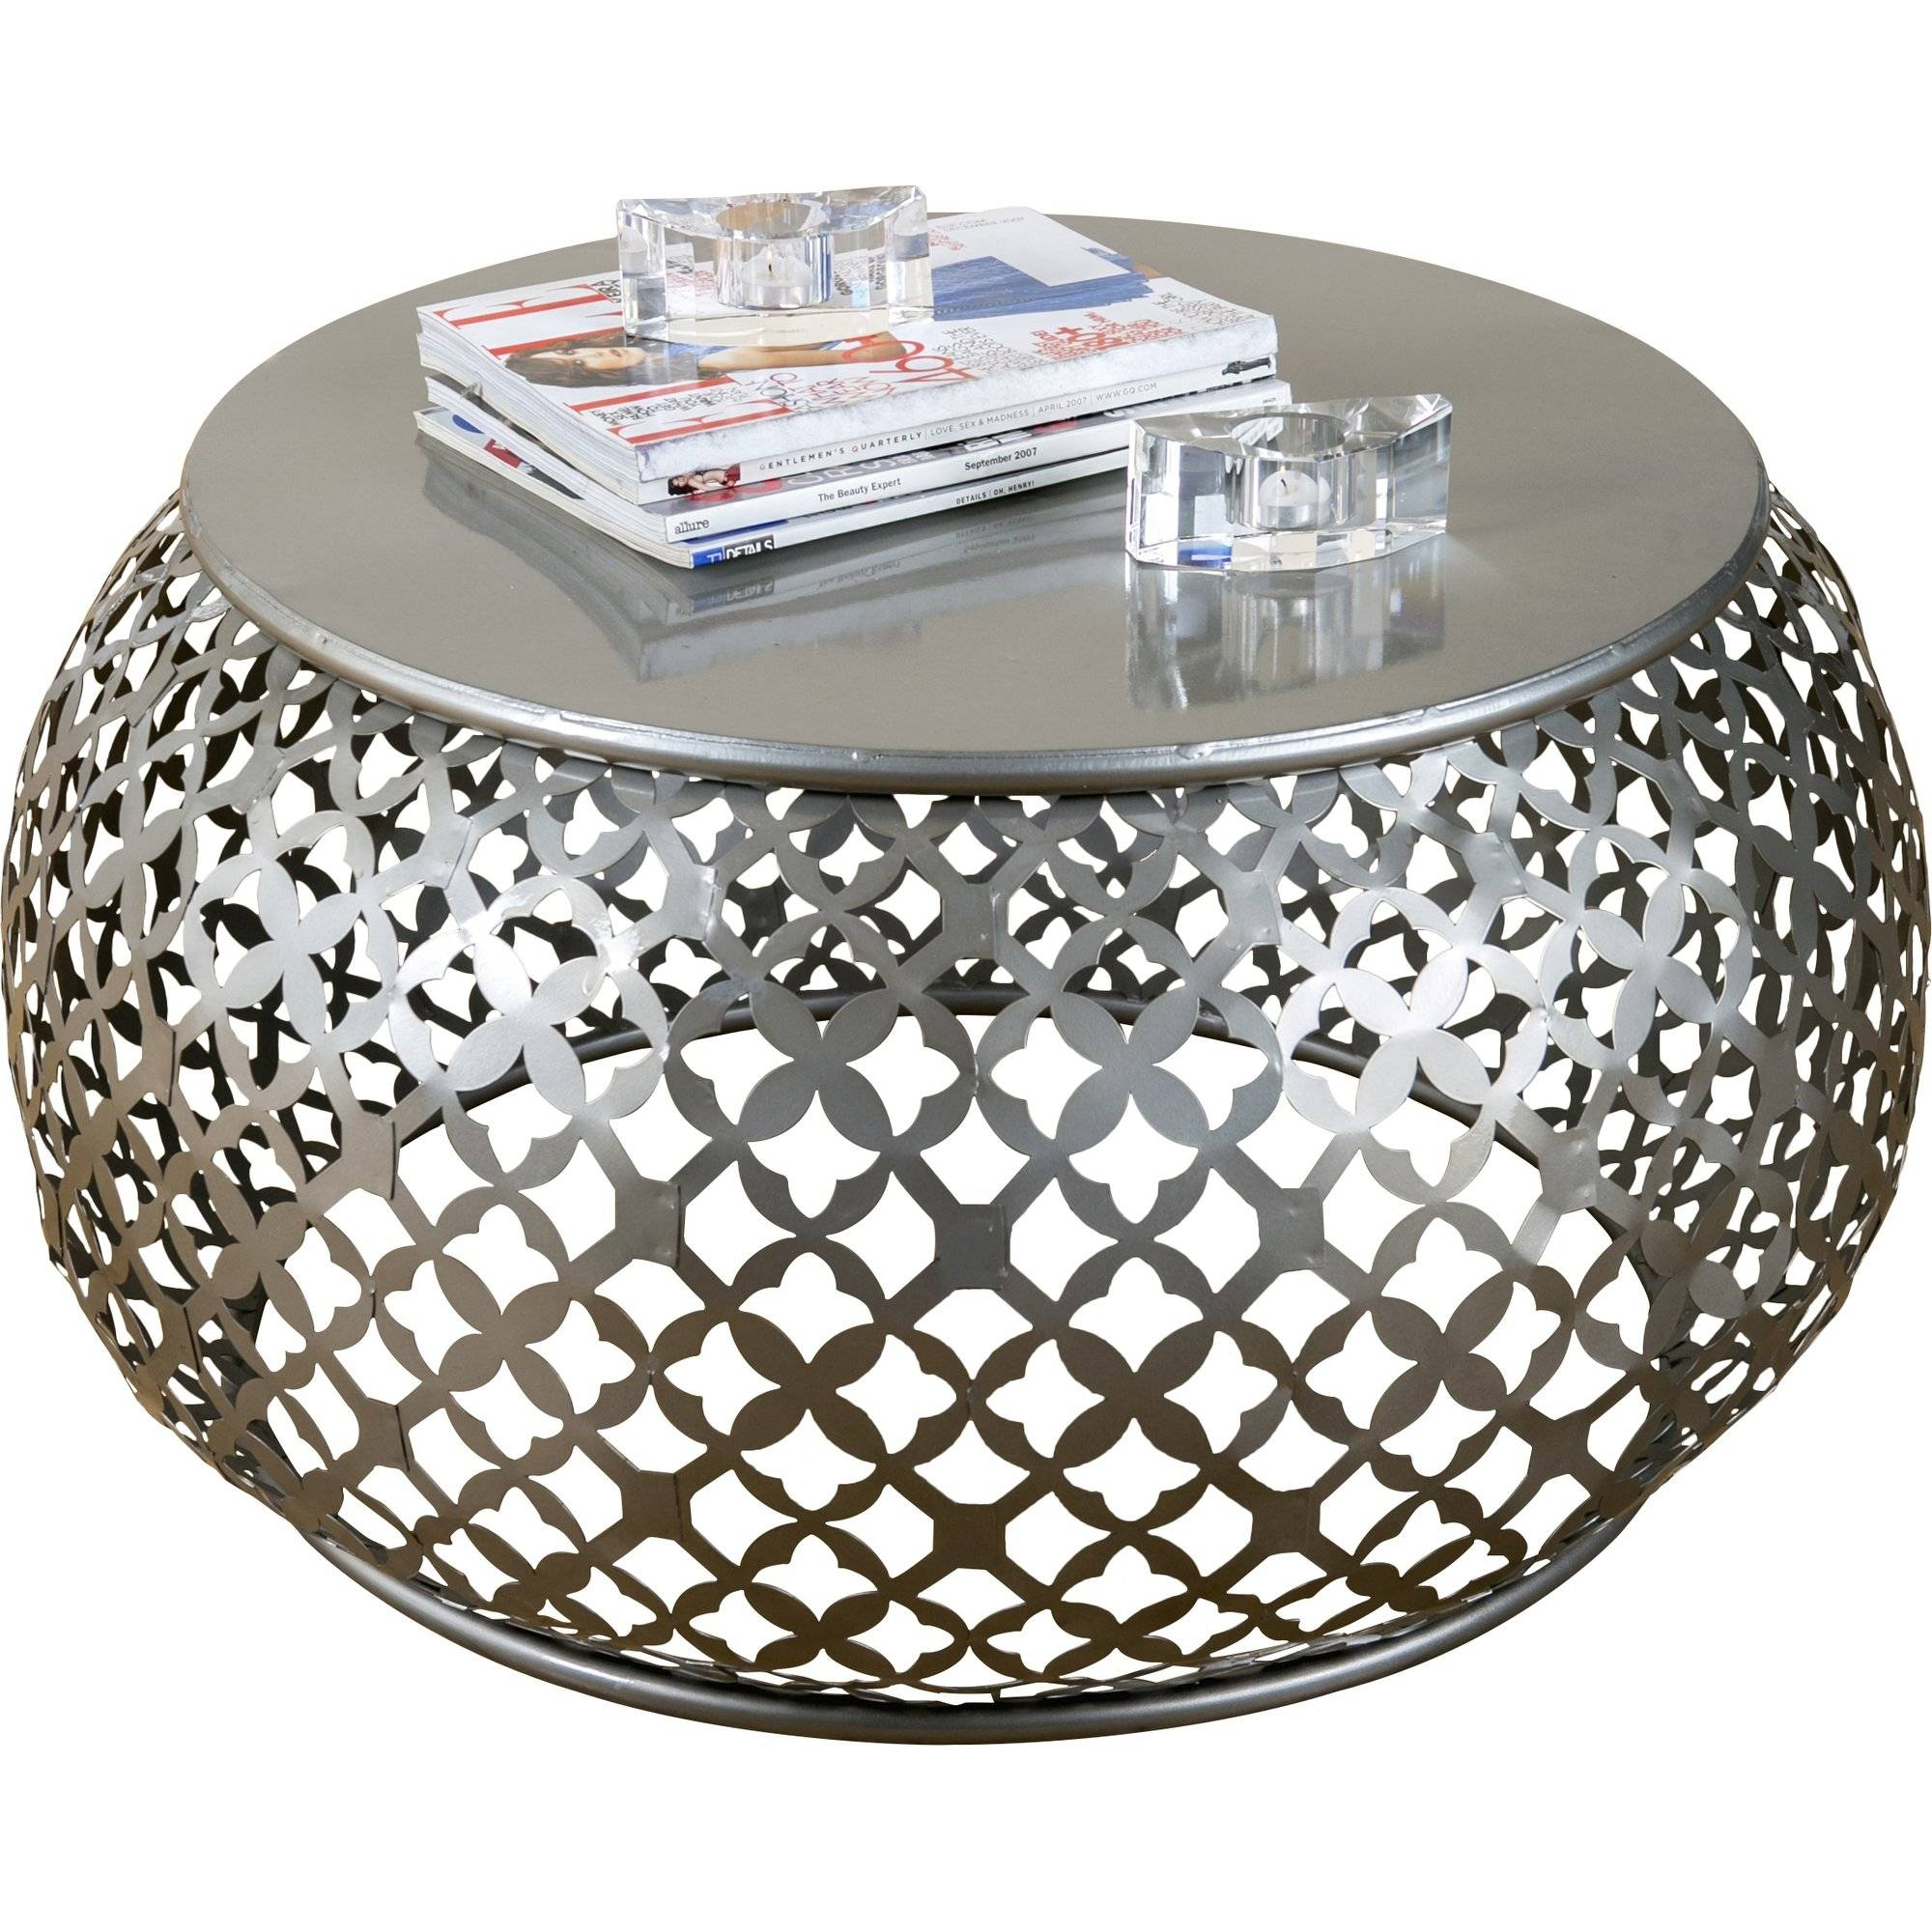 Unique wayfair coffee tables sarjaopascom sarjaopascom for Wayfair round glass coffee table